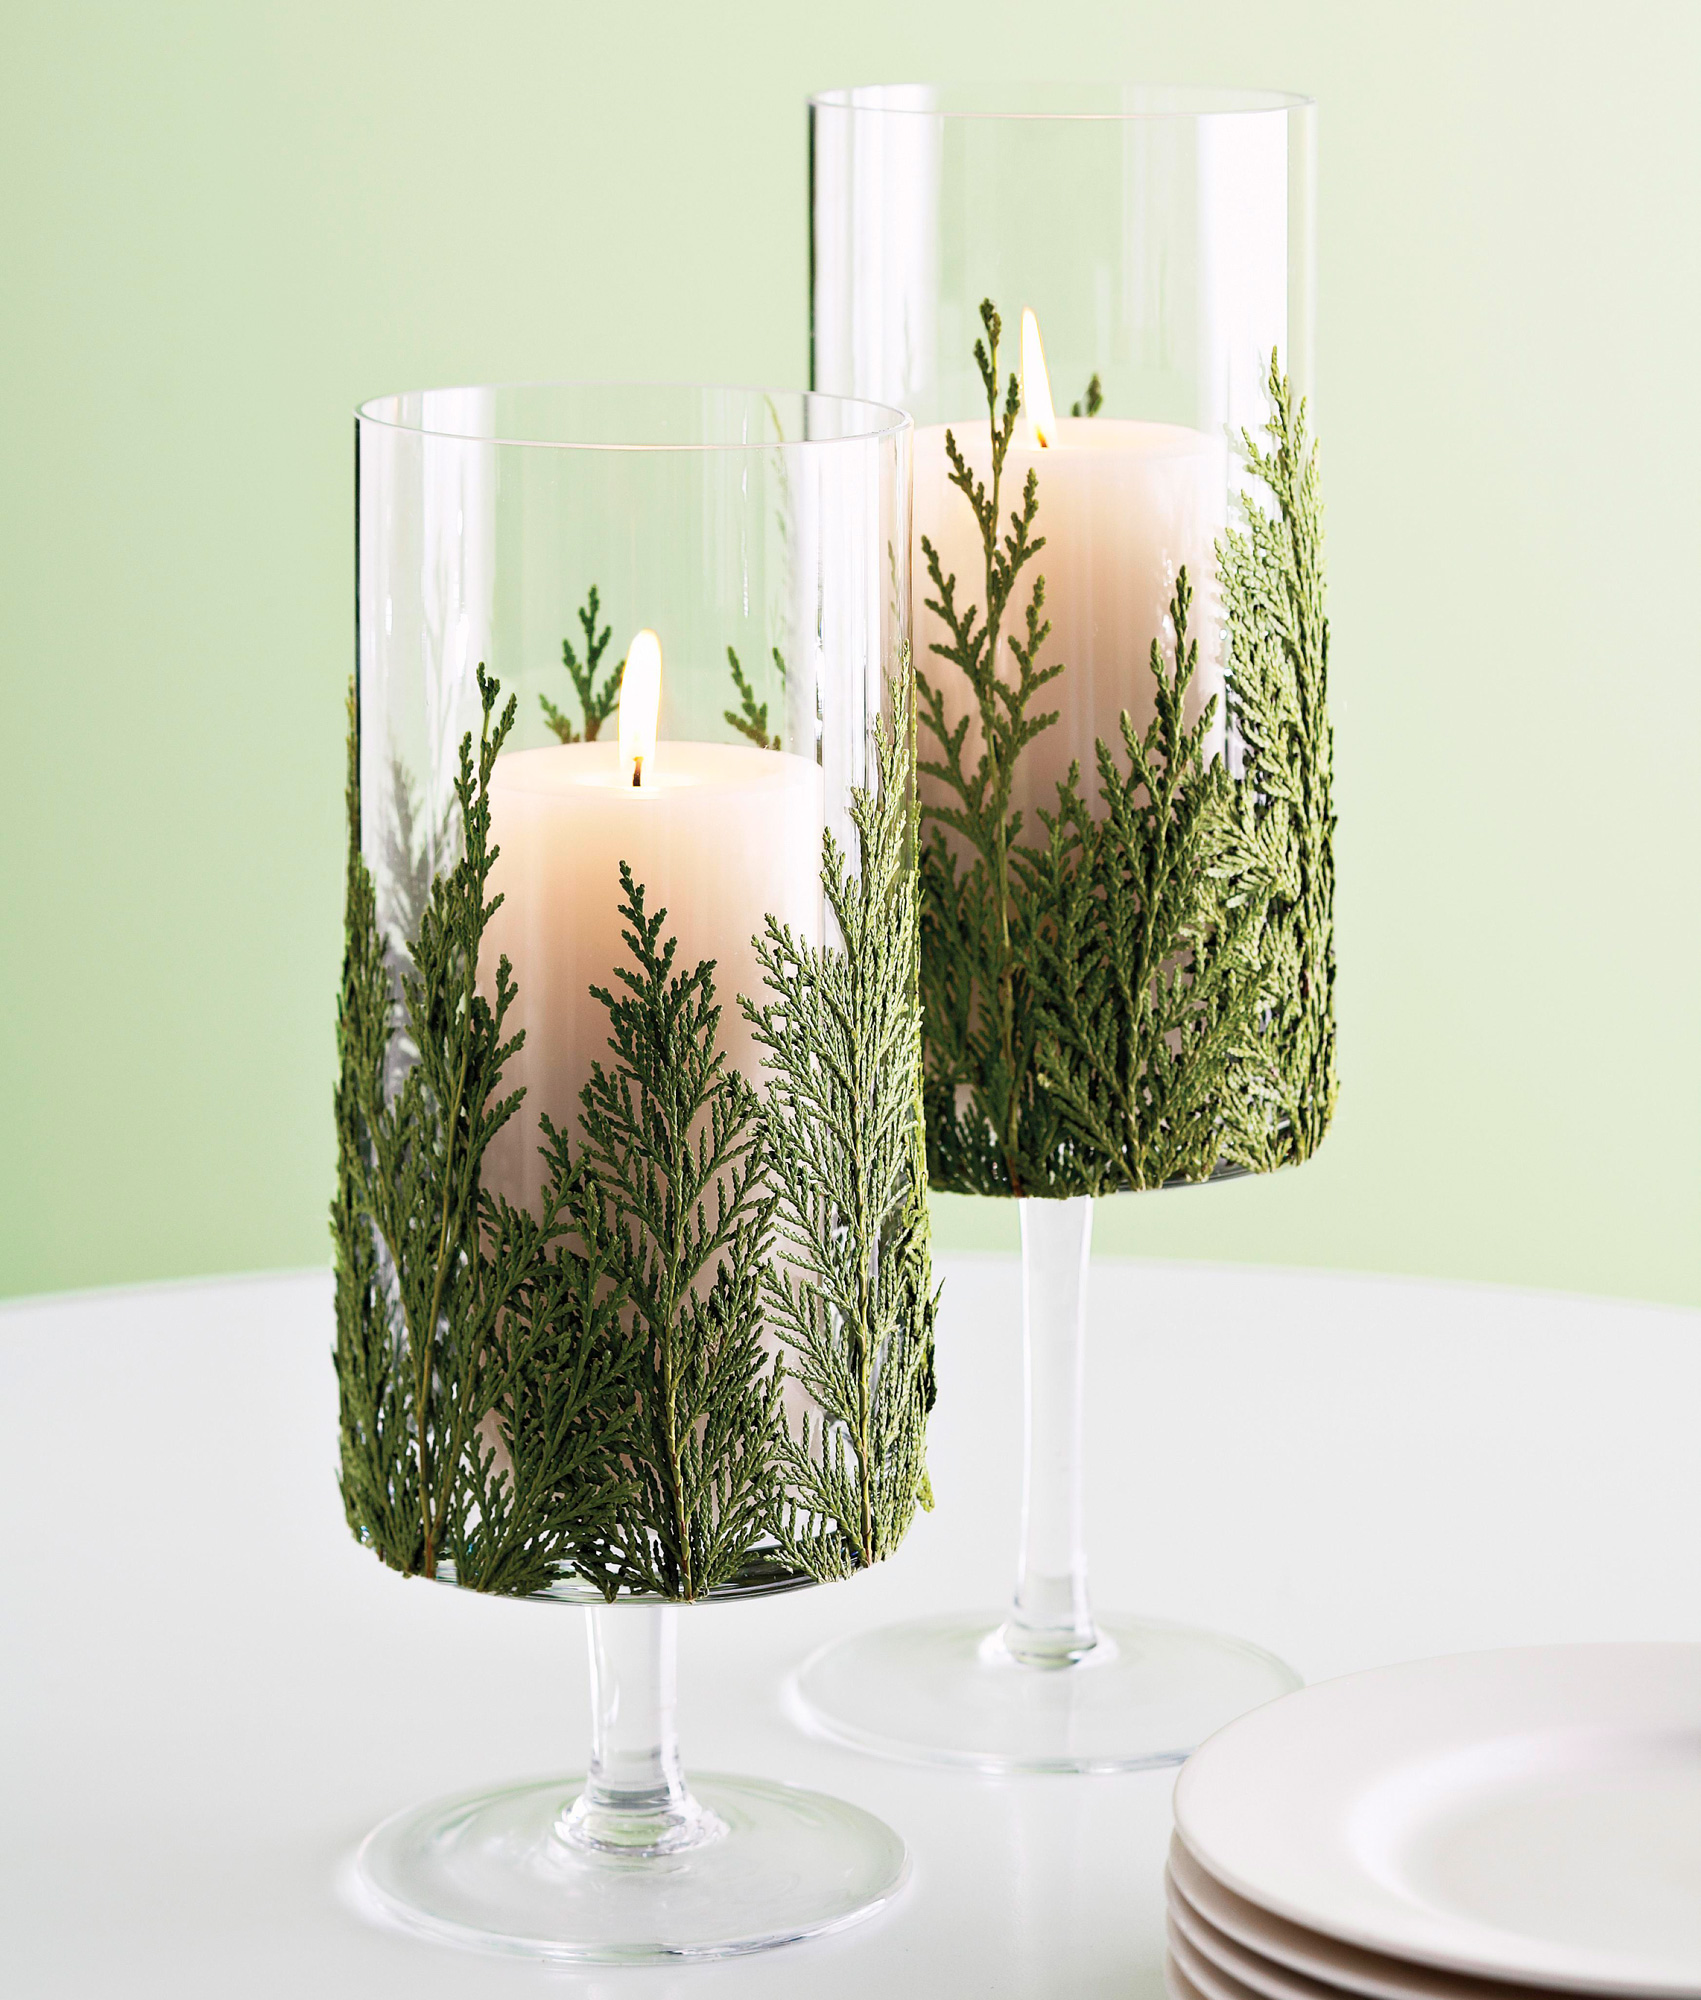 glass candleholders with greenery and white candles